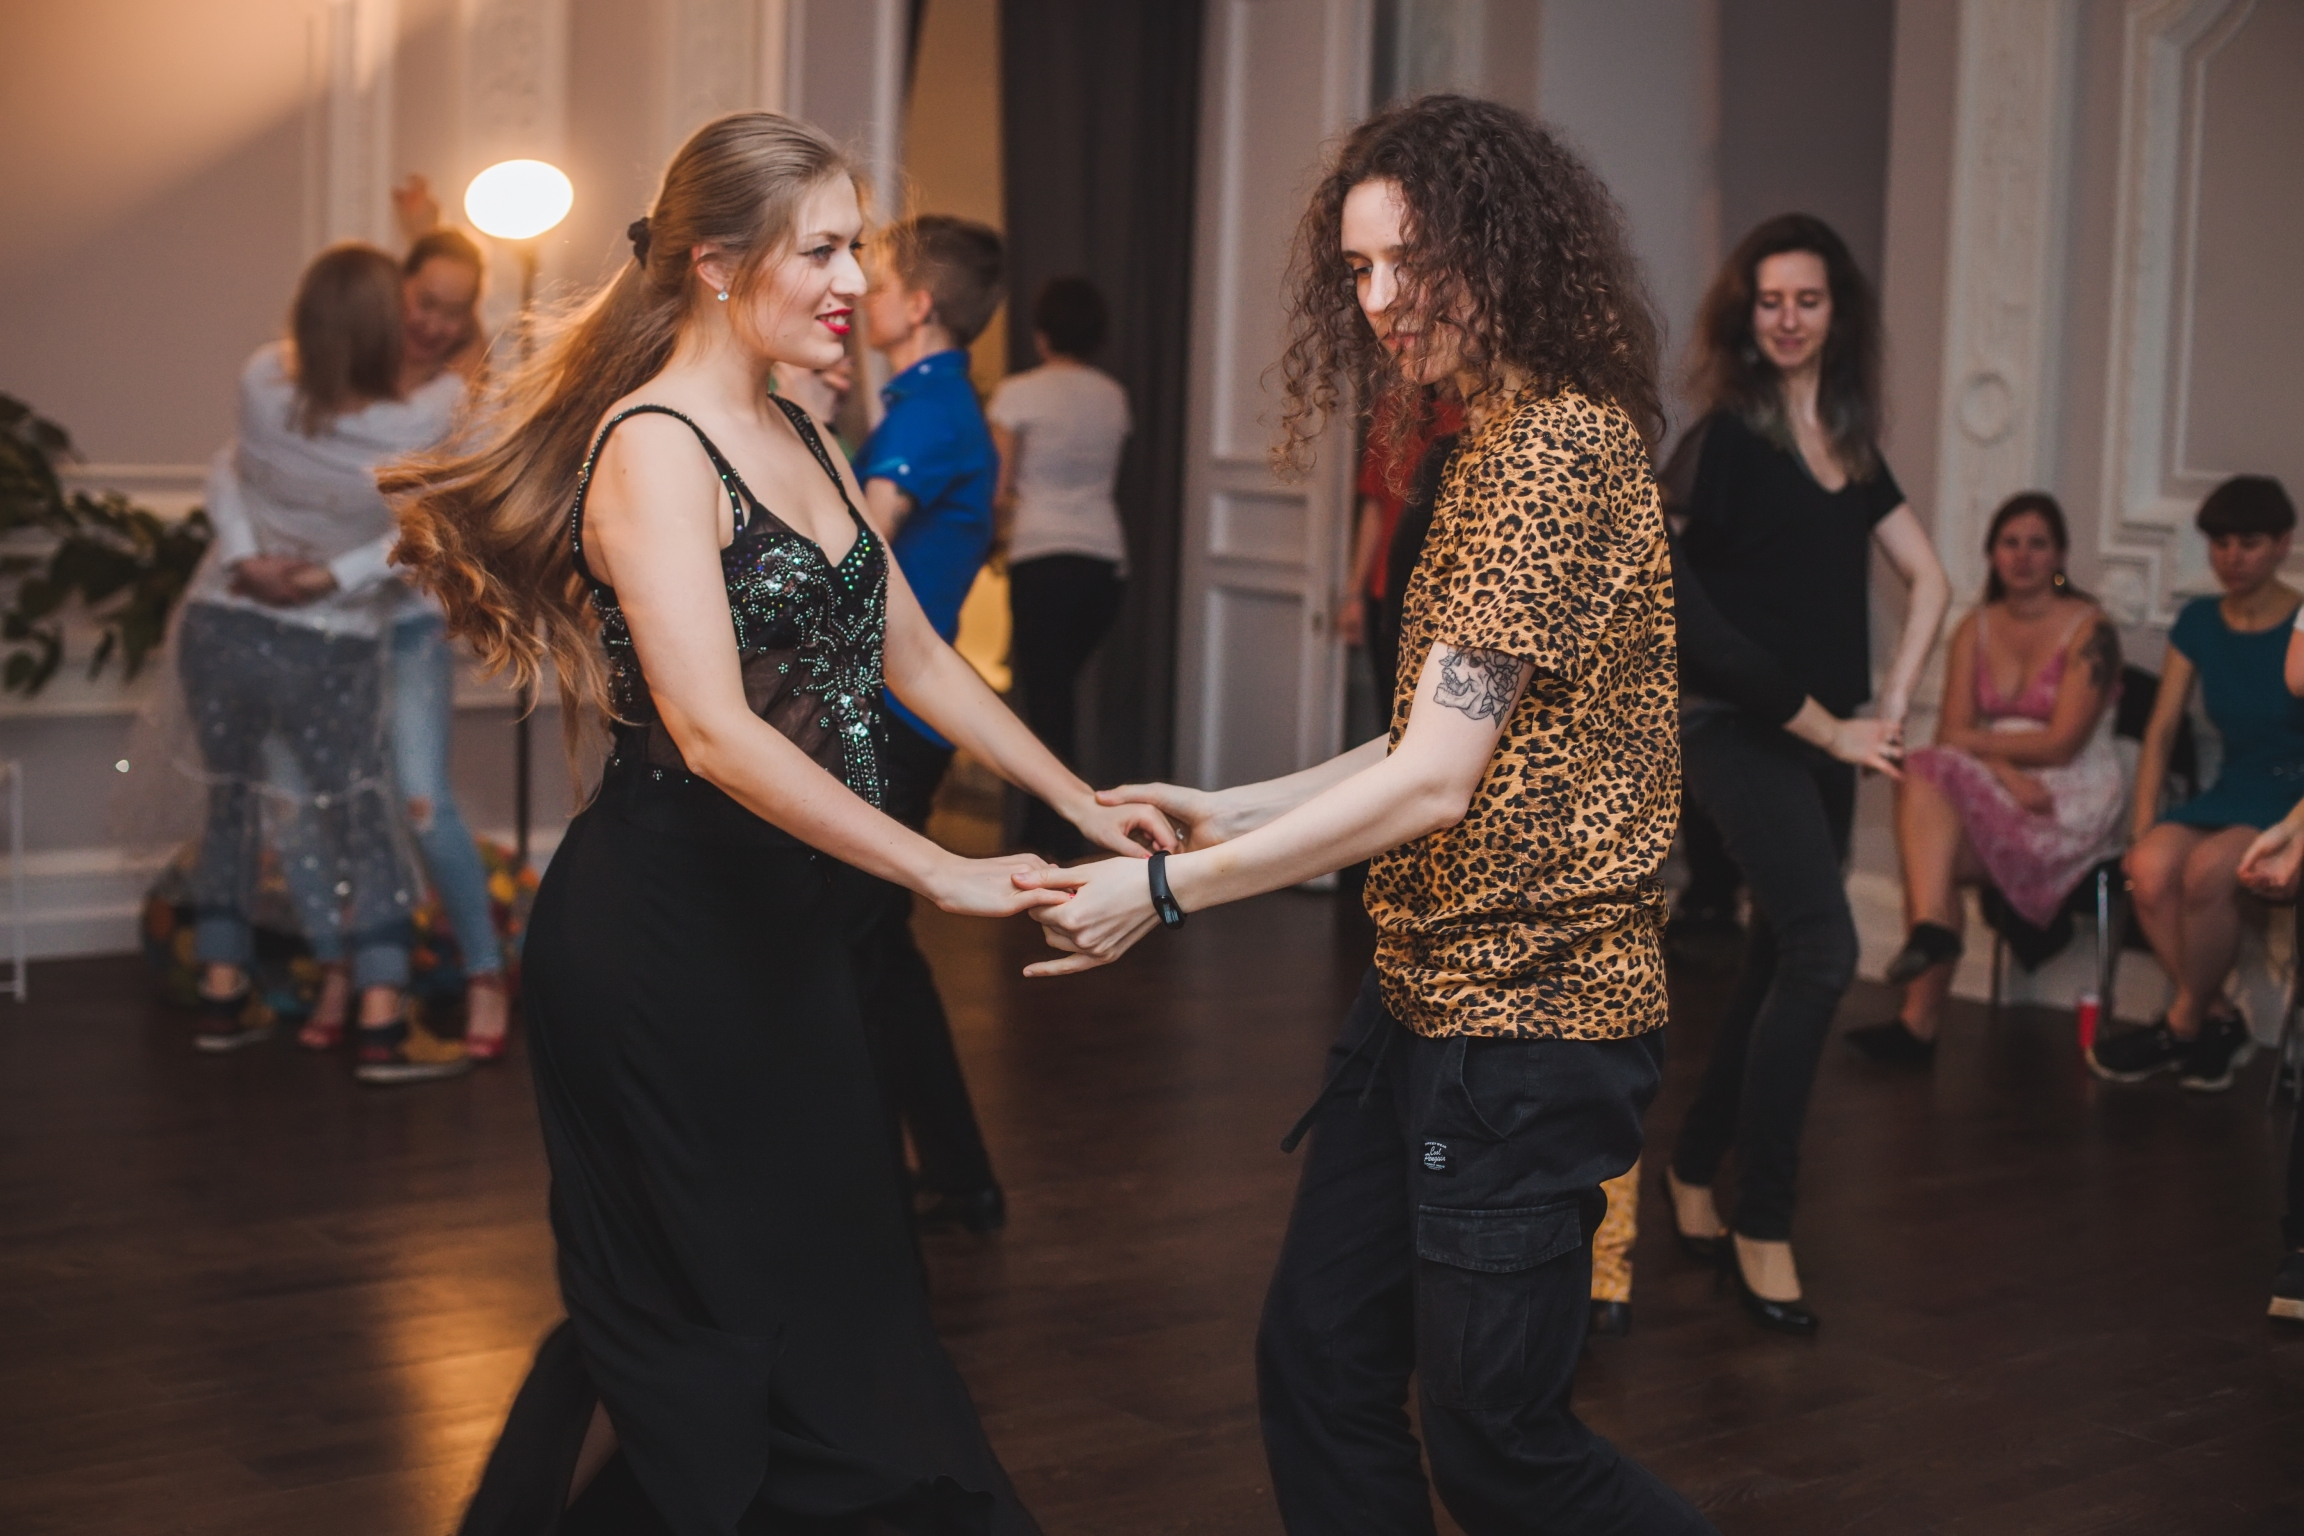 Two people dance at a studio